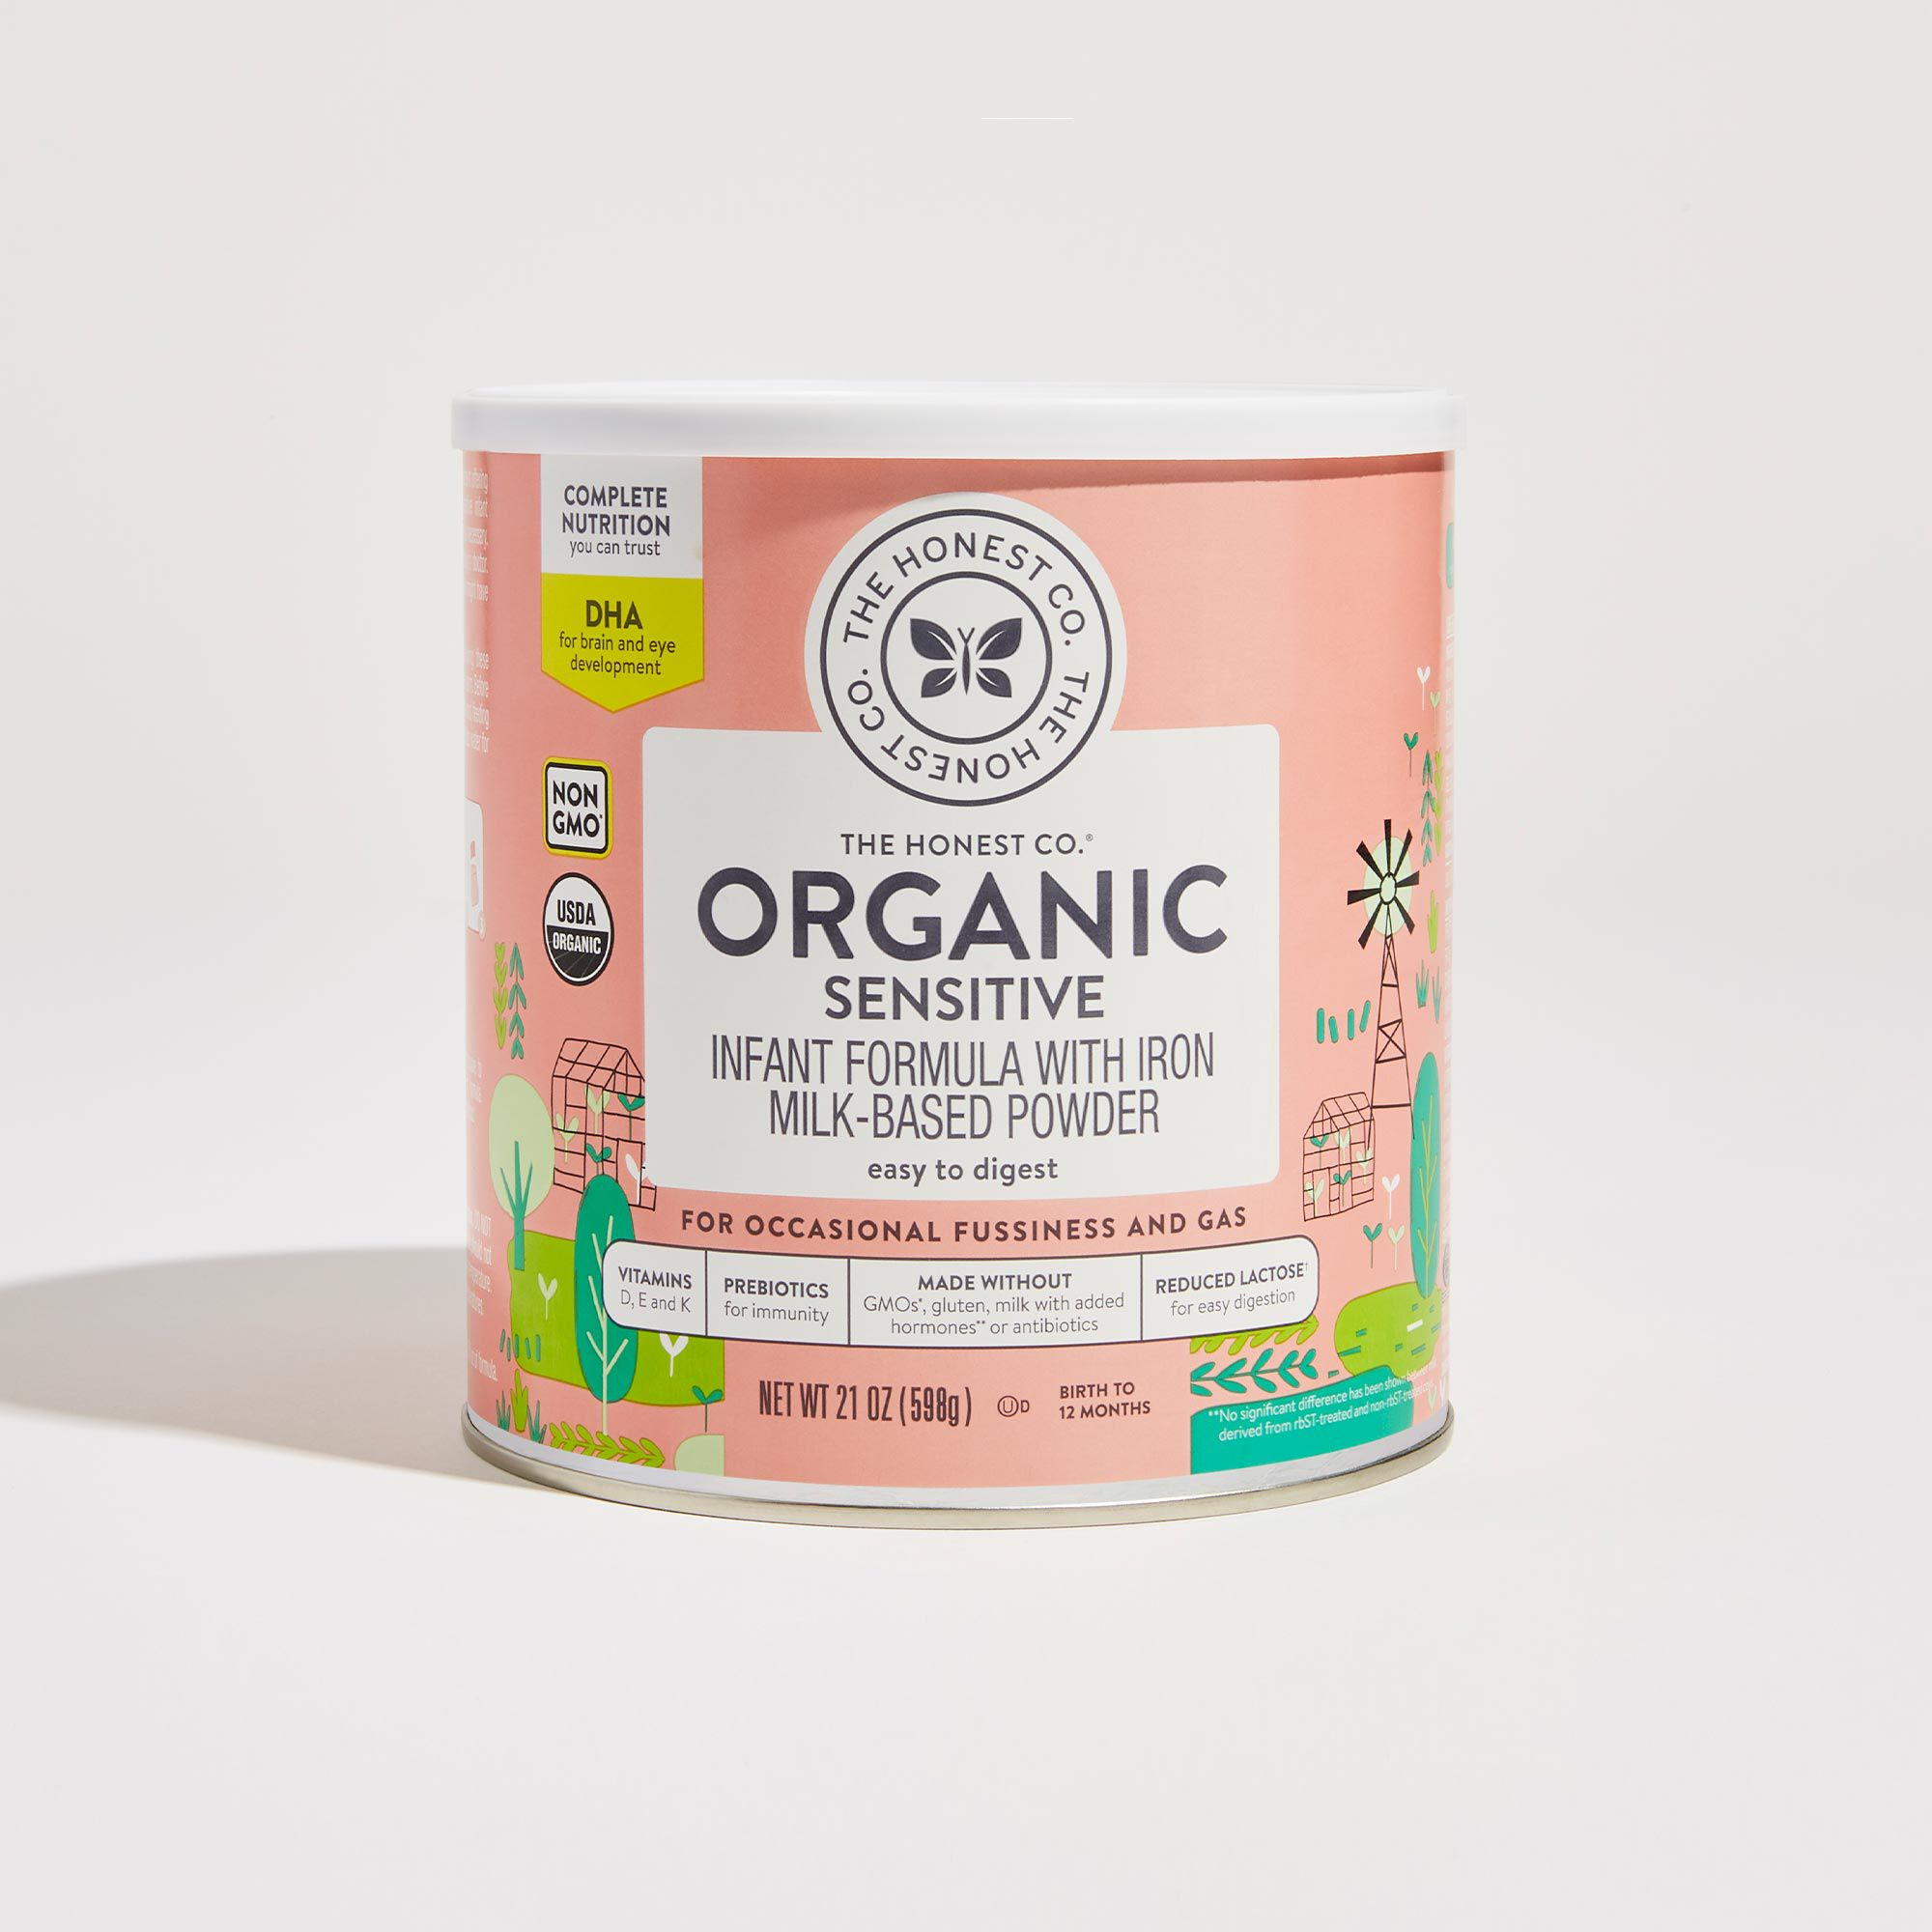 21 ounce Organic Sensitive Infant Formula Front of Container